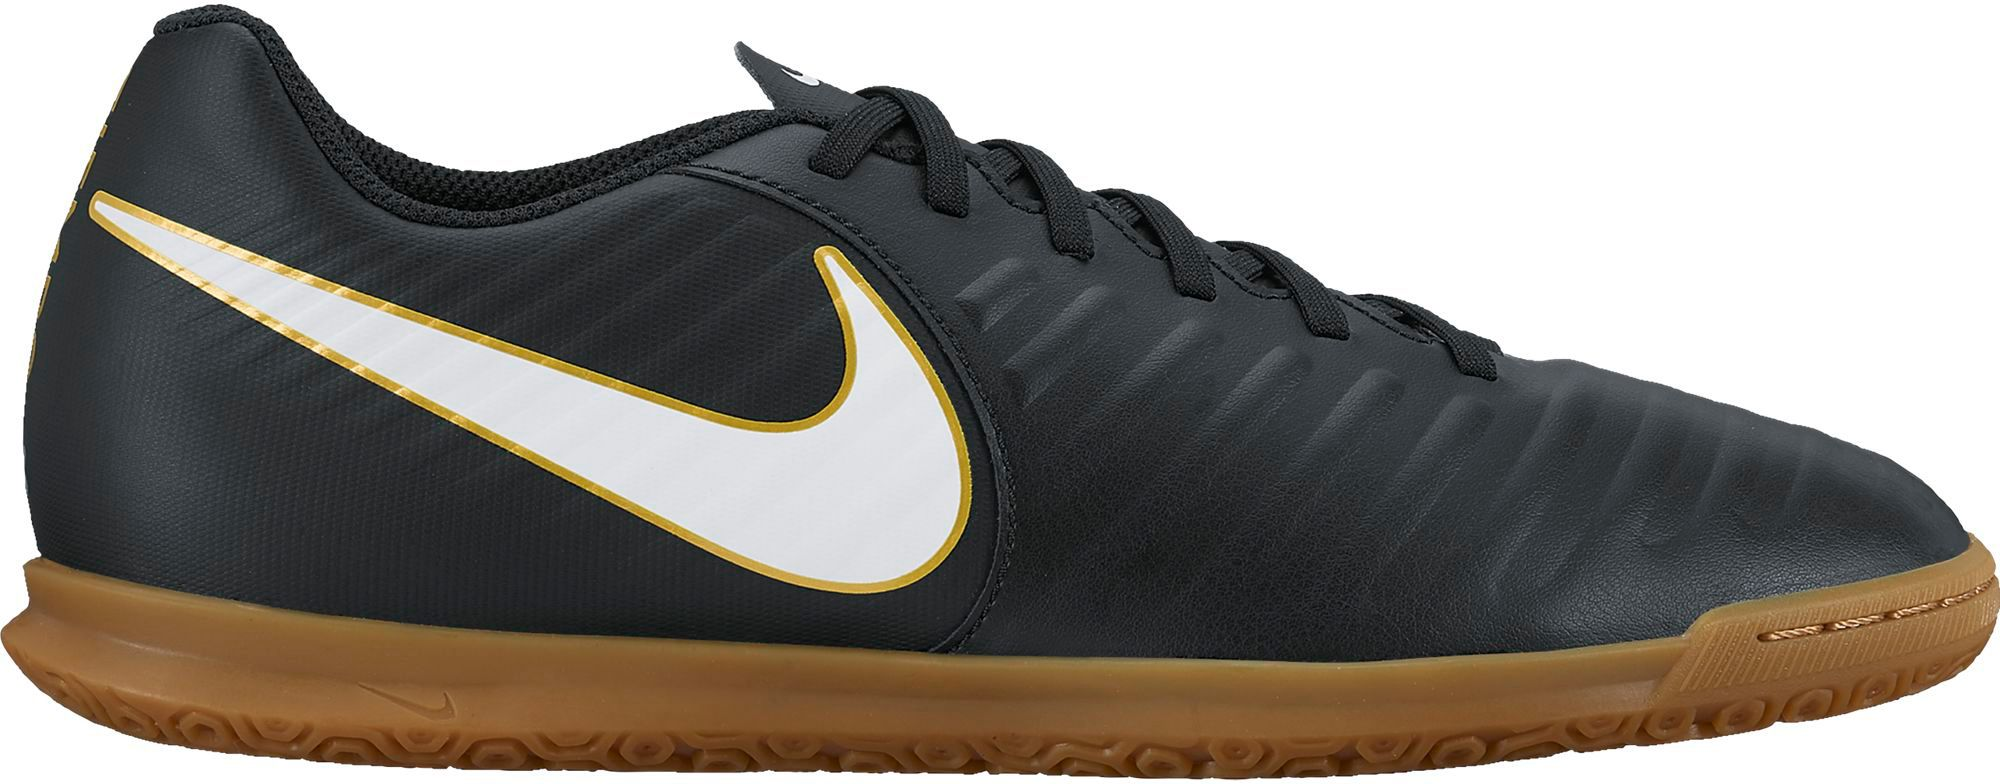 Nike Tiempo X Rio Iv Indoor Soccer Shoes by Nike